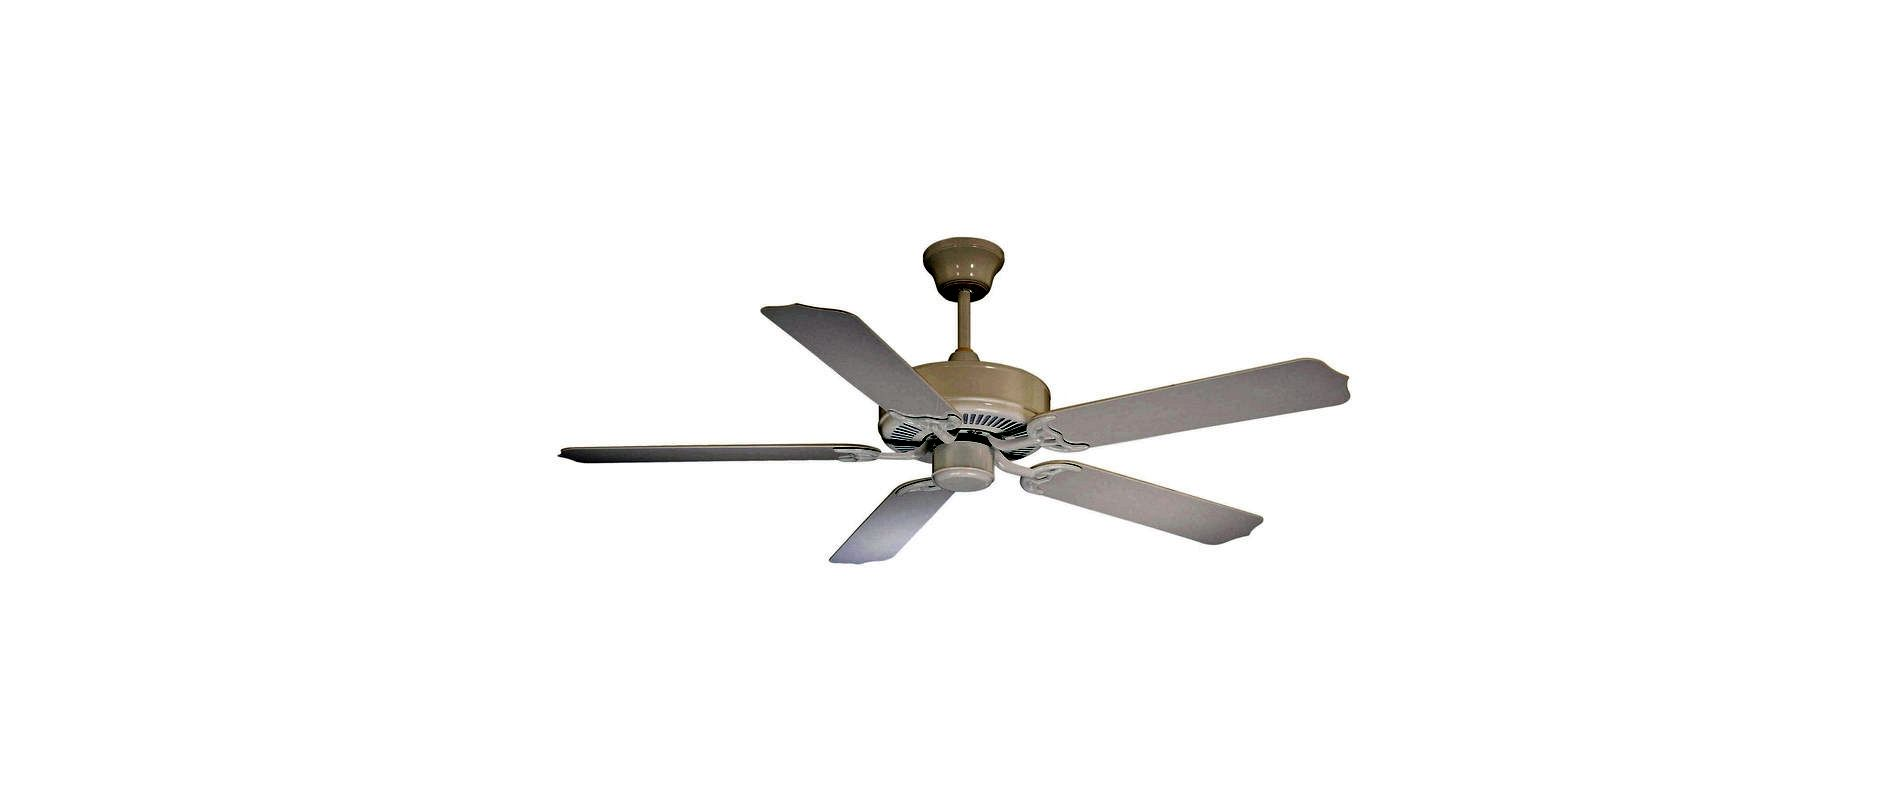 "Savoy House 52-EOF-5 Nomad 52"" Span 5 Blade Outdoor Ceiling Fan"